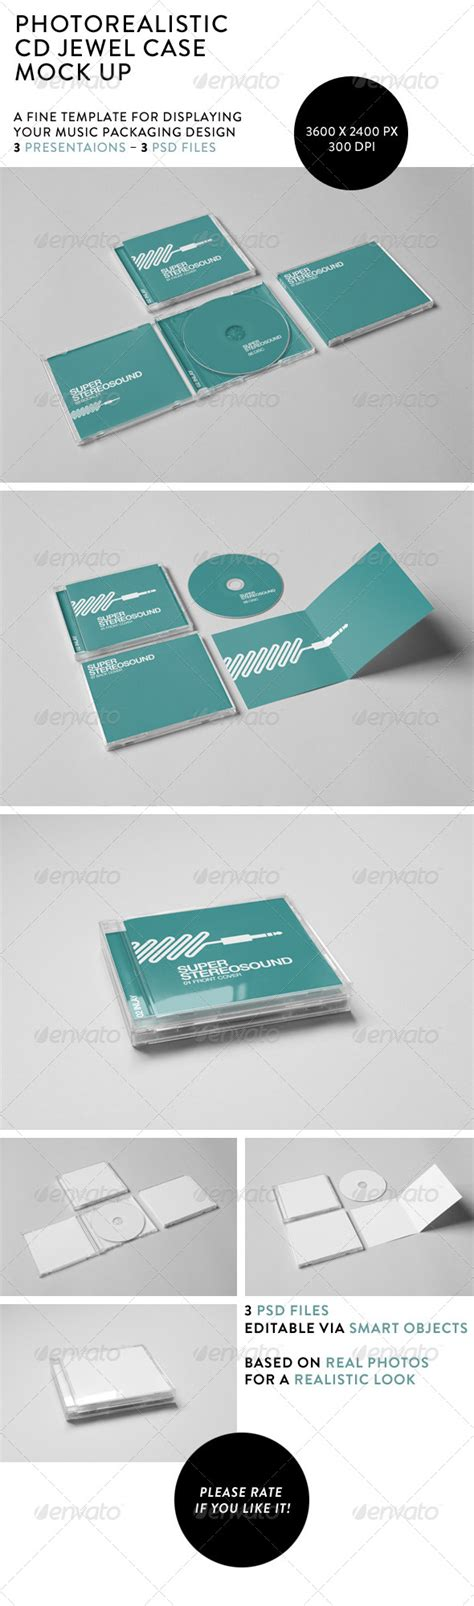 buy after effect logo template psd realistic cd jewel case mock up mockup packaging design